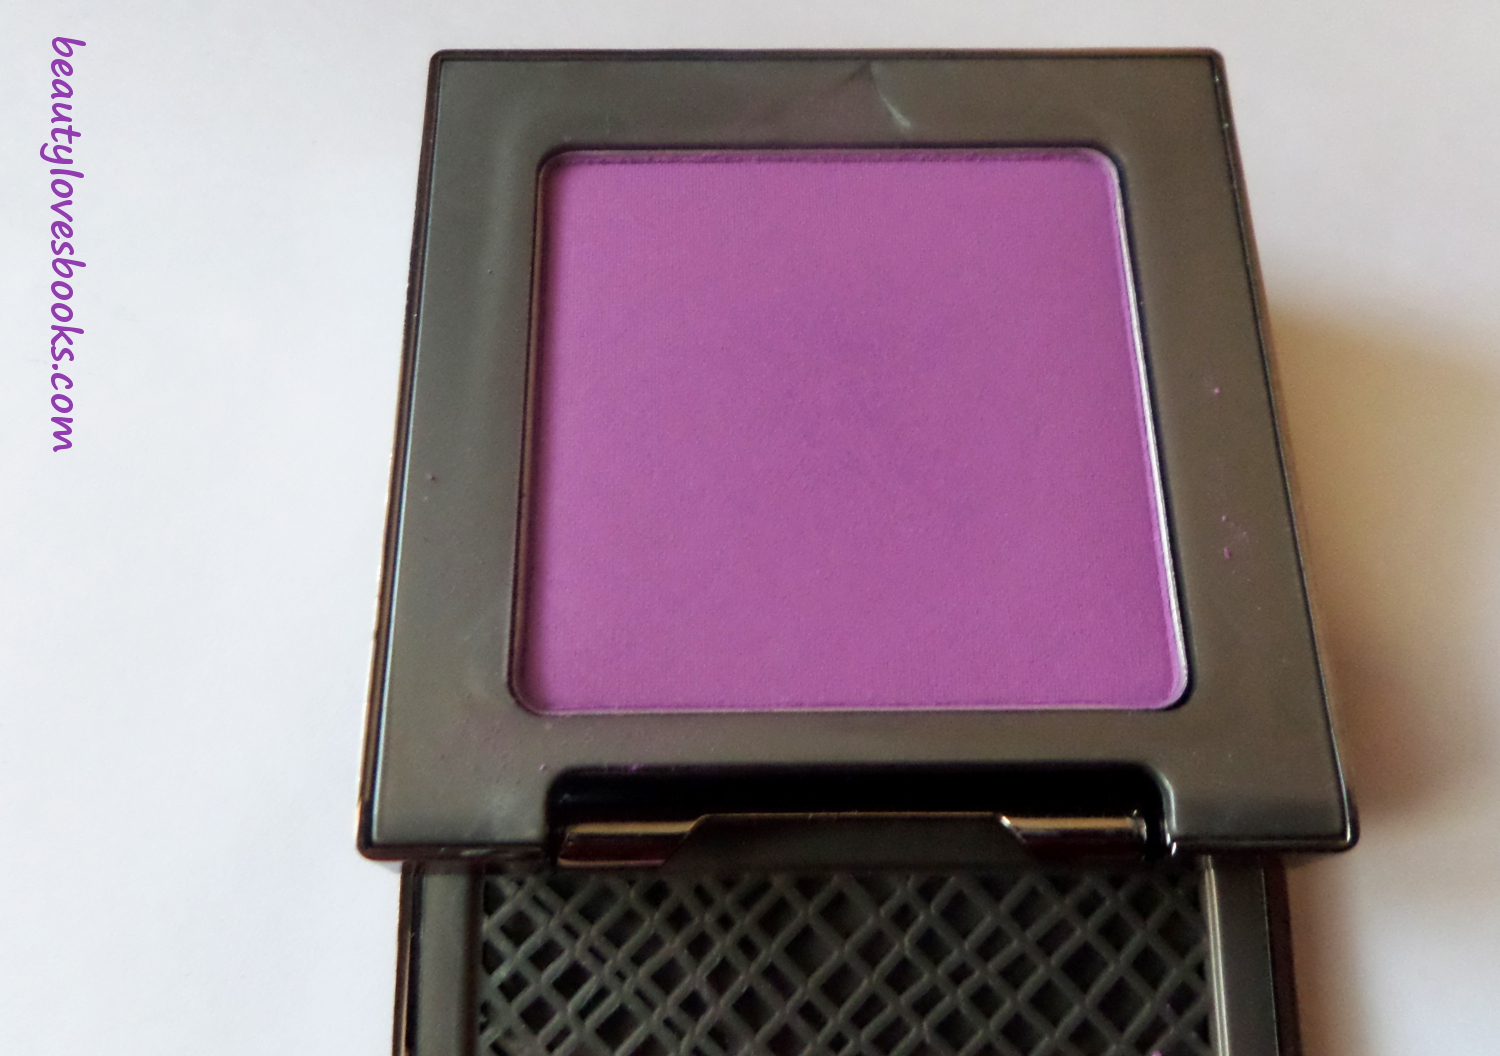 Urban Decay Afterglow 8-hour powder blush in Bittersweet